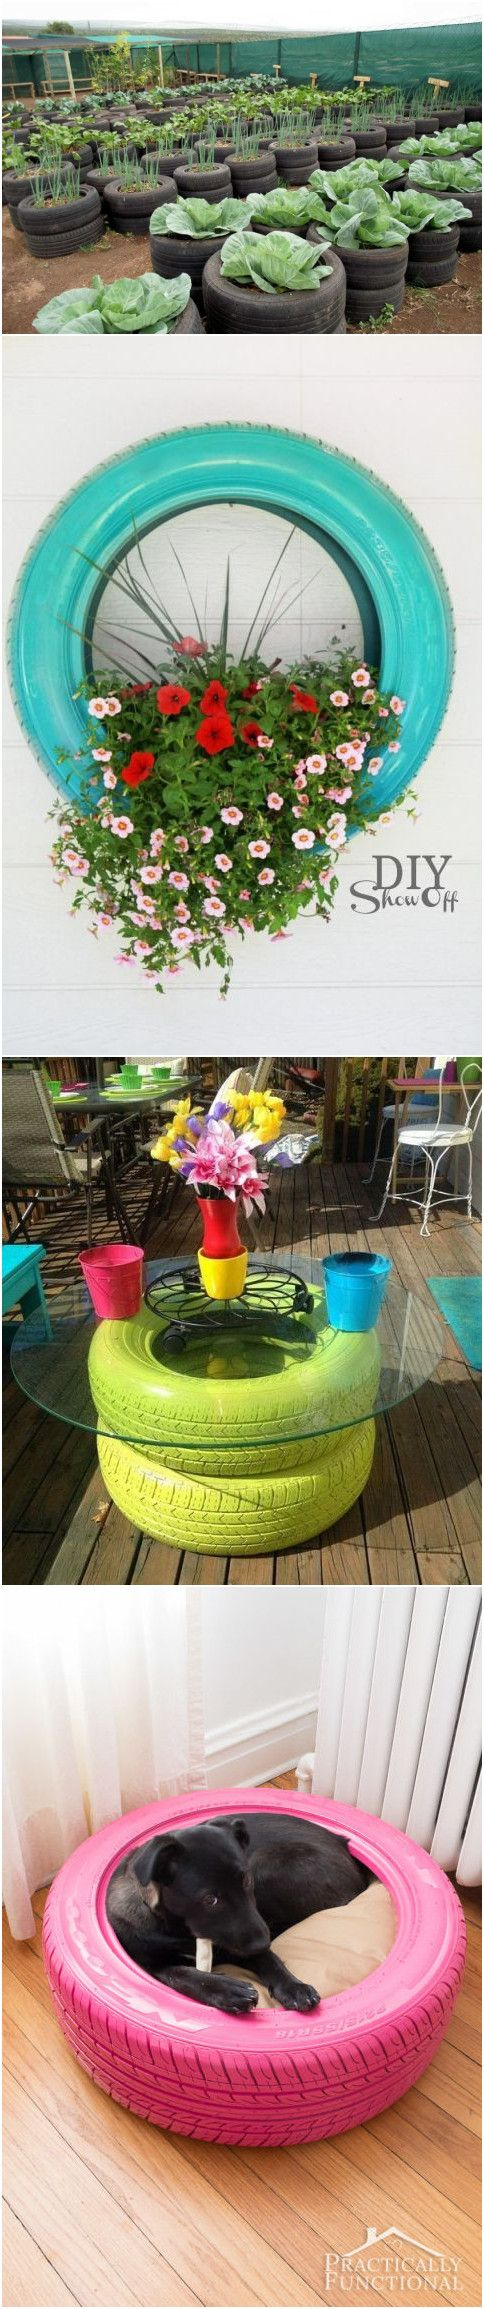 best 25 tire garden ideas on pinterest tire planters old tire